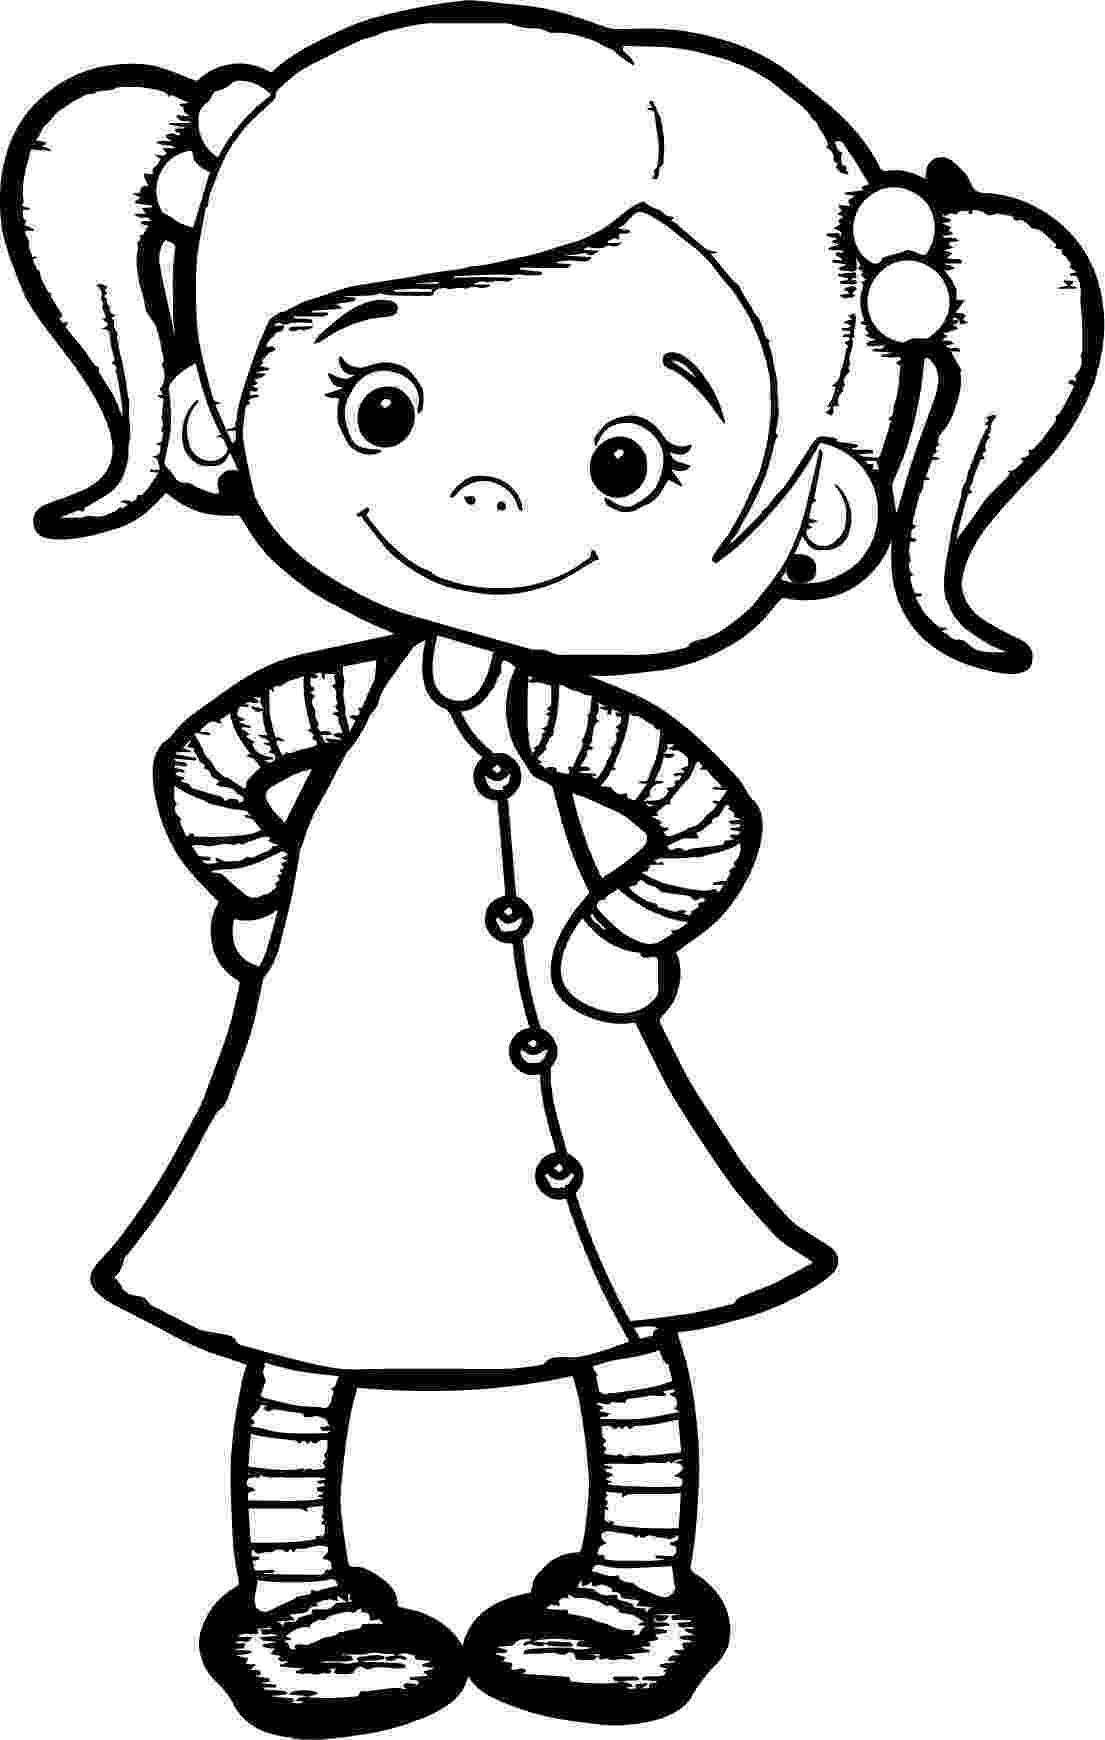 colering pages for girls coloring pages for girls dr odd pages colering girls for